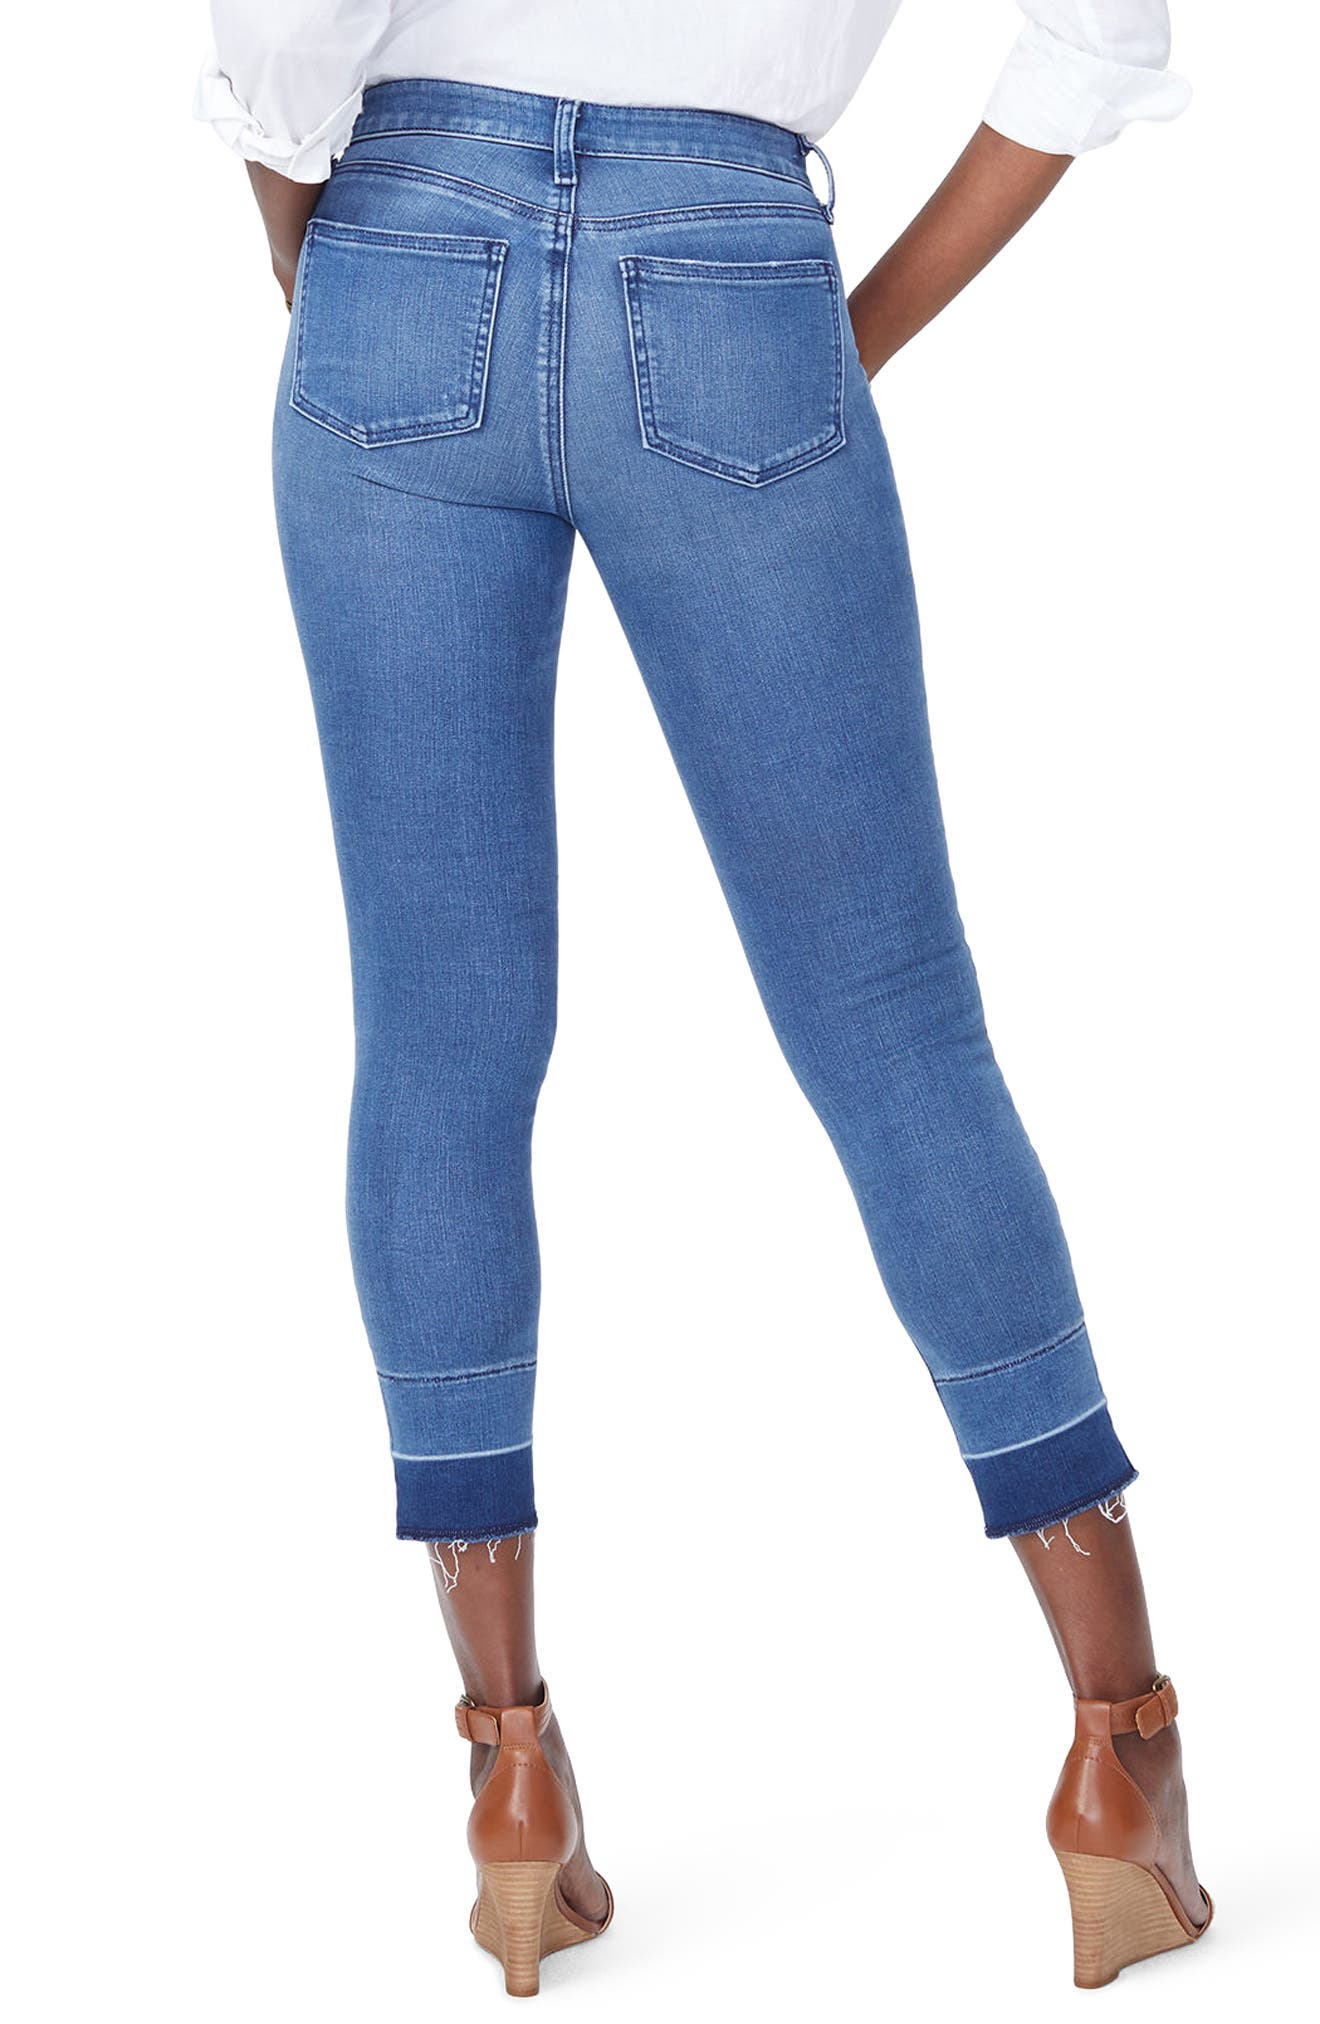 Alina Release Hem Ankle Skinny Jeans,                             Alternate thumbnail 2, color,                             410